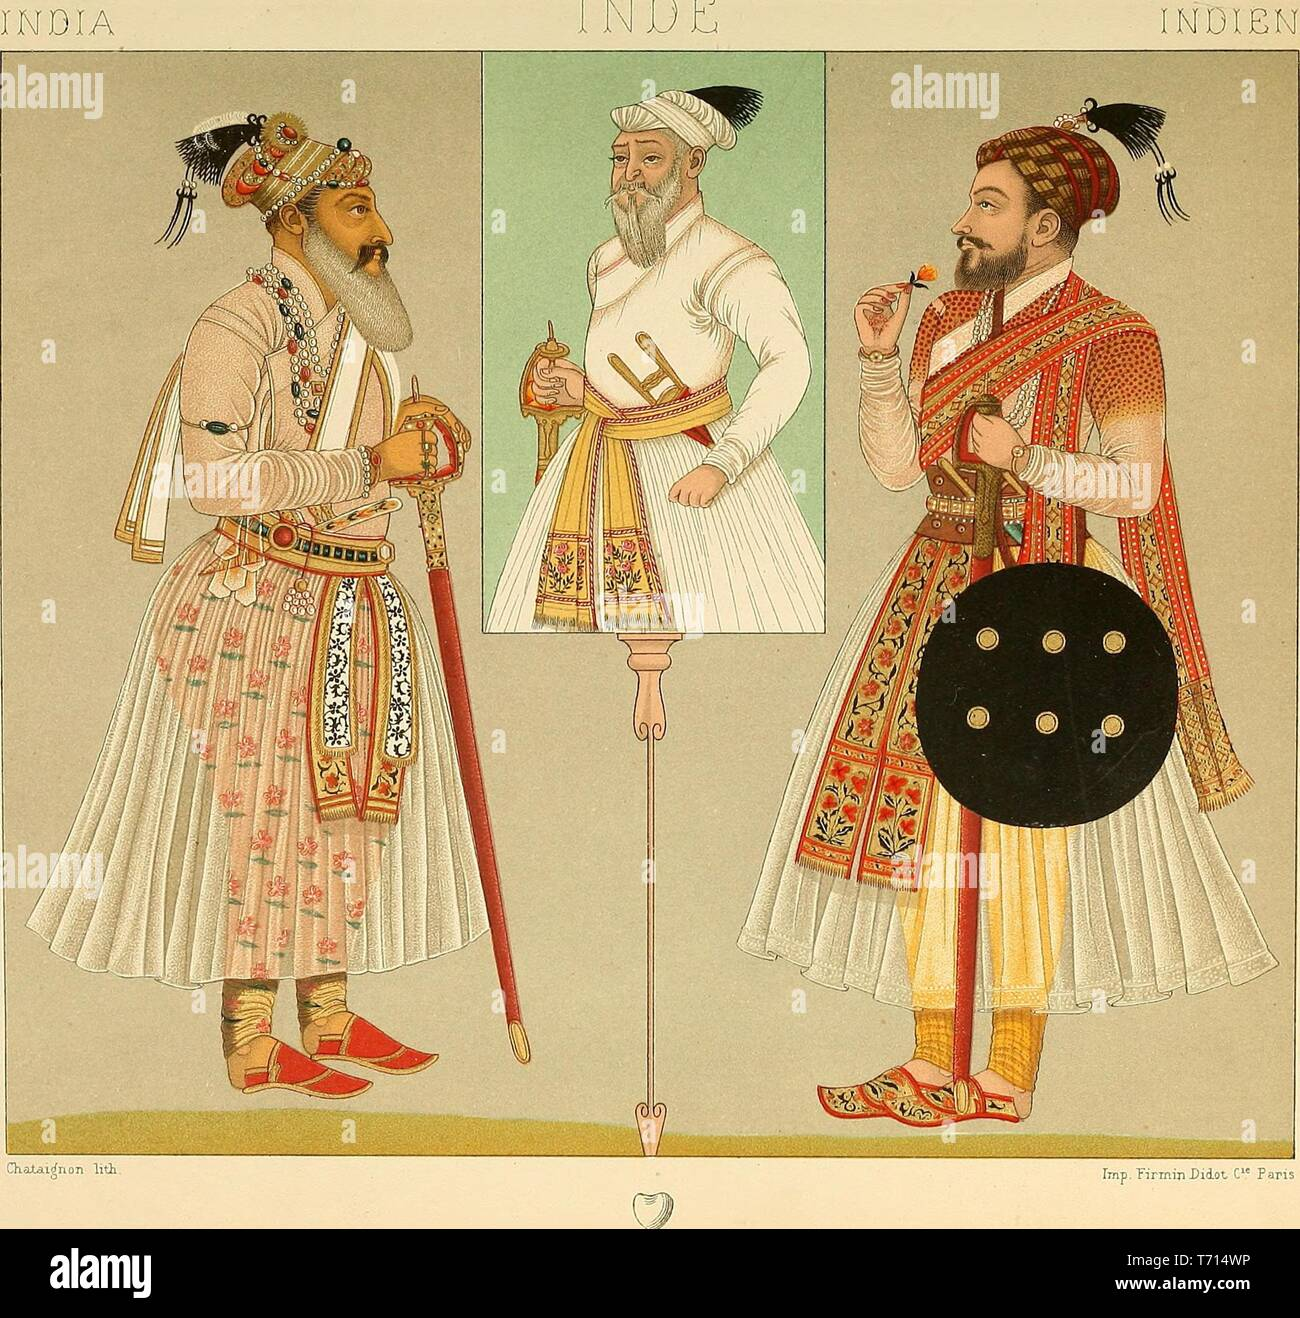 Illustrated drawing of Indian male folk costumes, from the book 'Le costume historique' by Auguste Racinet, 1888. Courtesy Internet Archive. () - Stock Image